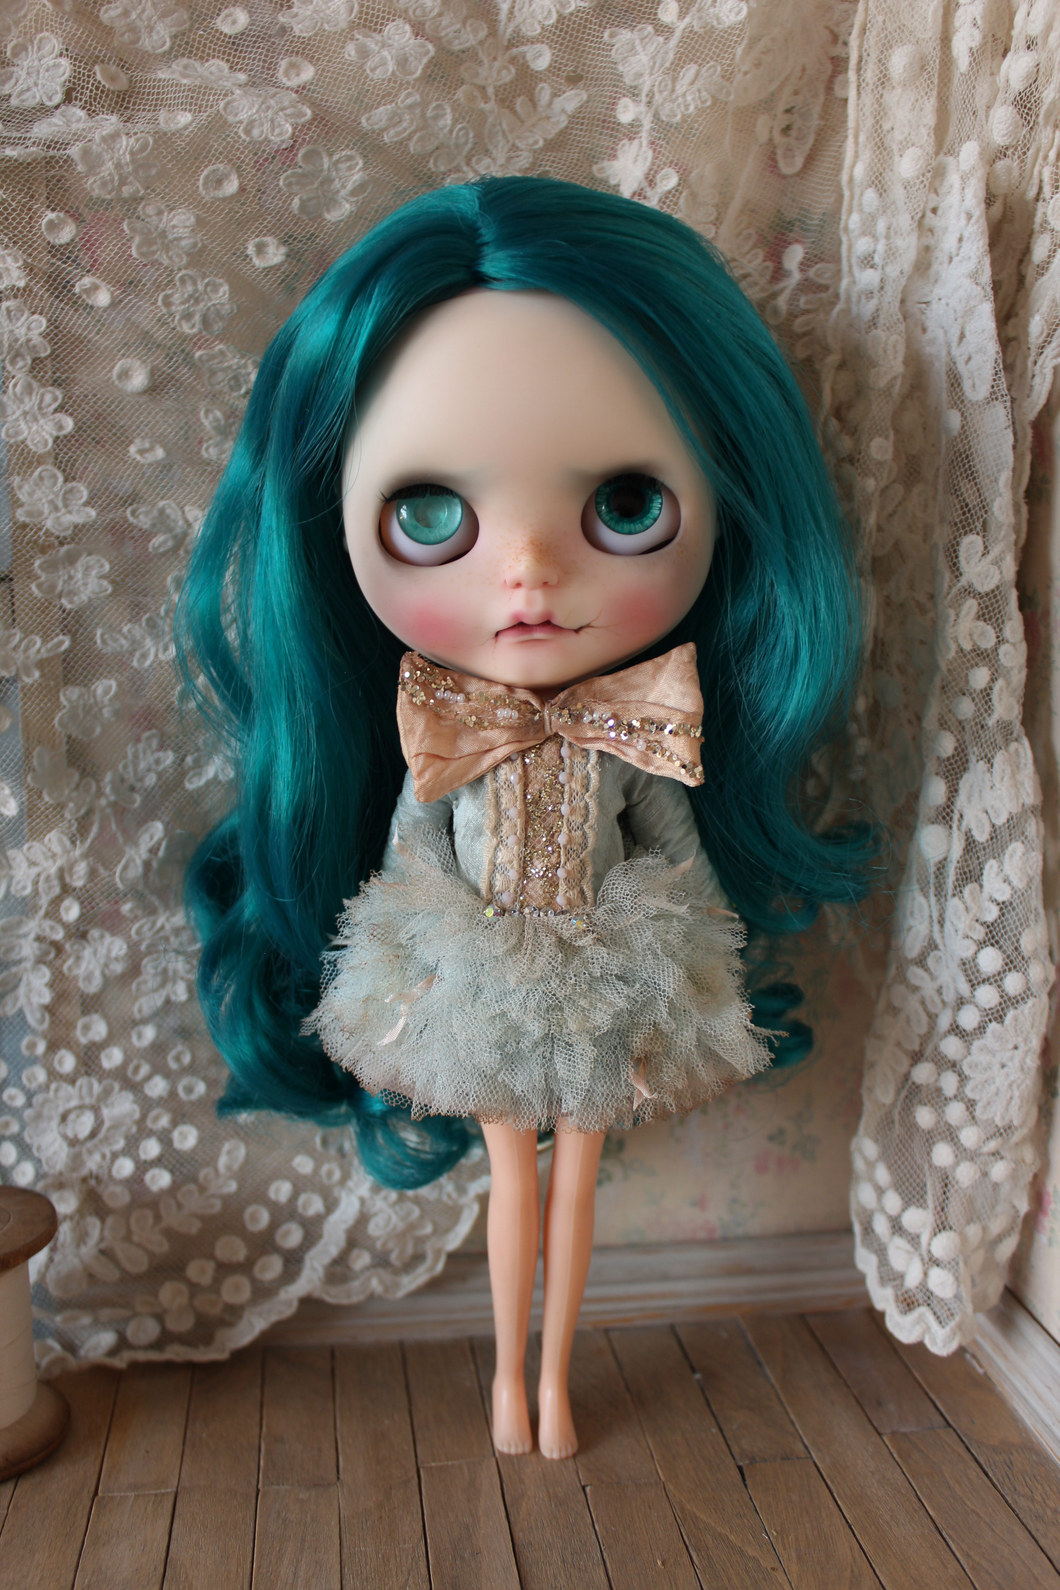 Soft Light Tutu. A dress for Blythe